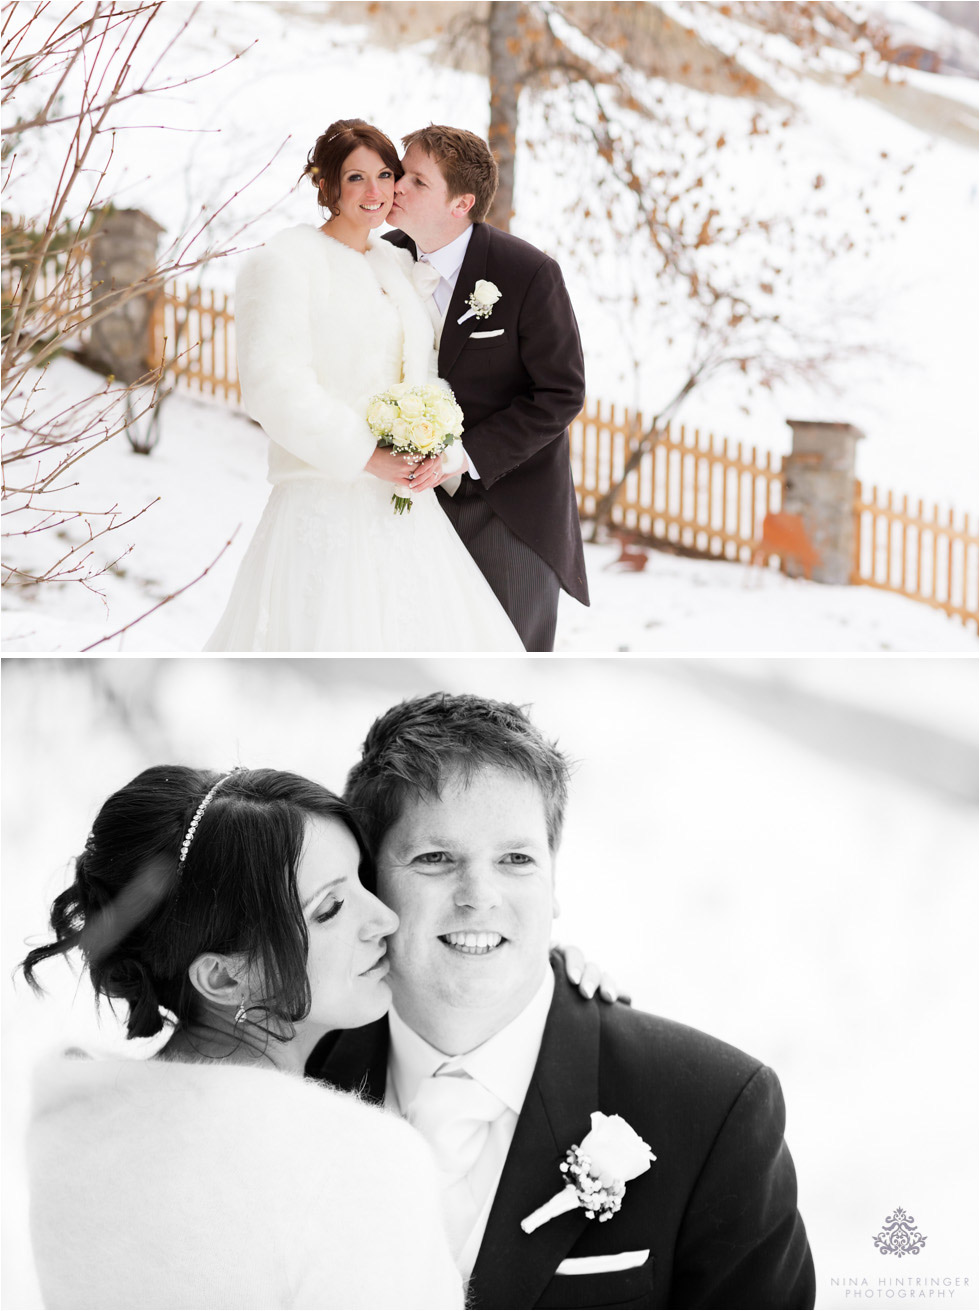 Winter Wedding in St. Anton, Arlberg | UK meets Austria | Helen & James - Blog of Nina Hintringer Photography - Wedding Photography, Wedding Reportage and Destination Weddings